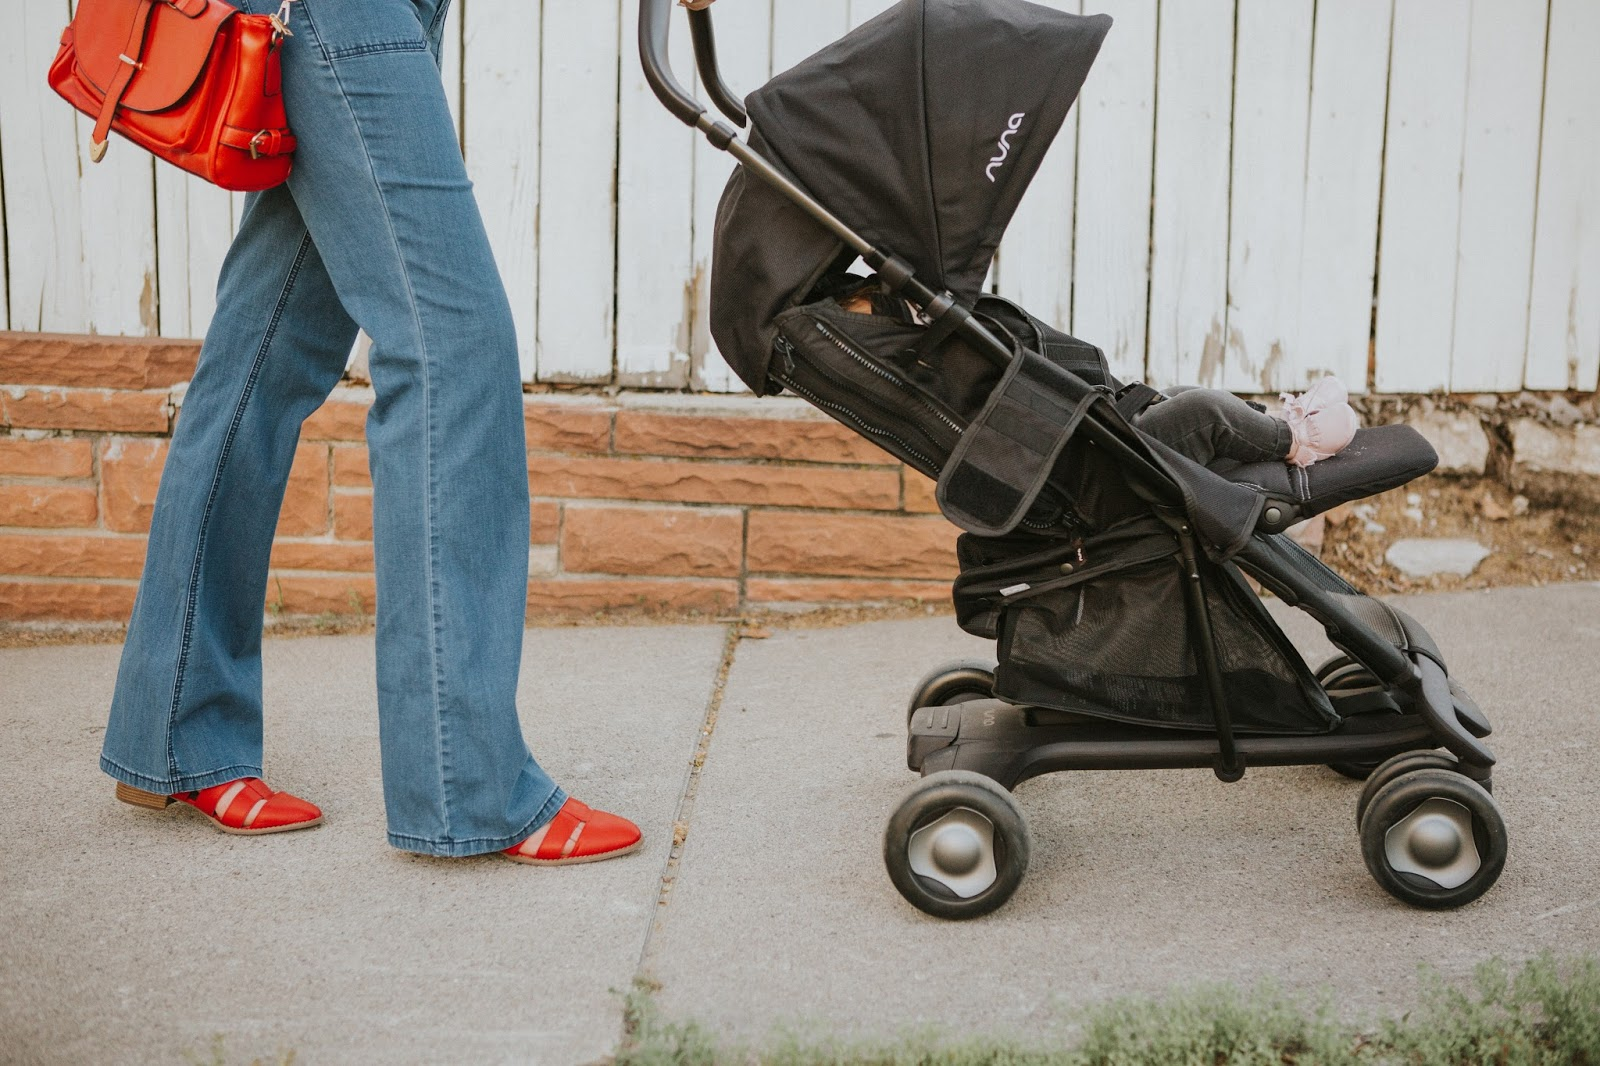 Nuna Stroller, Red Shoes, 70's style Jeans